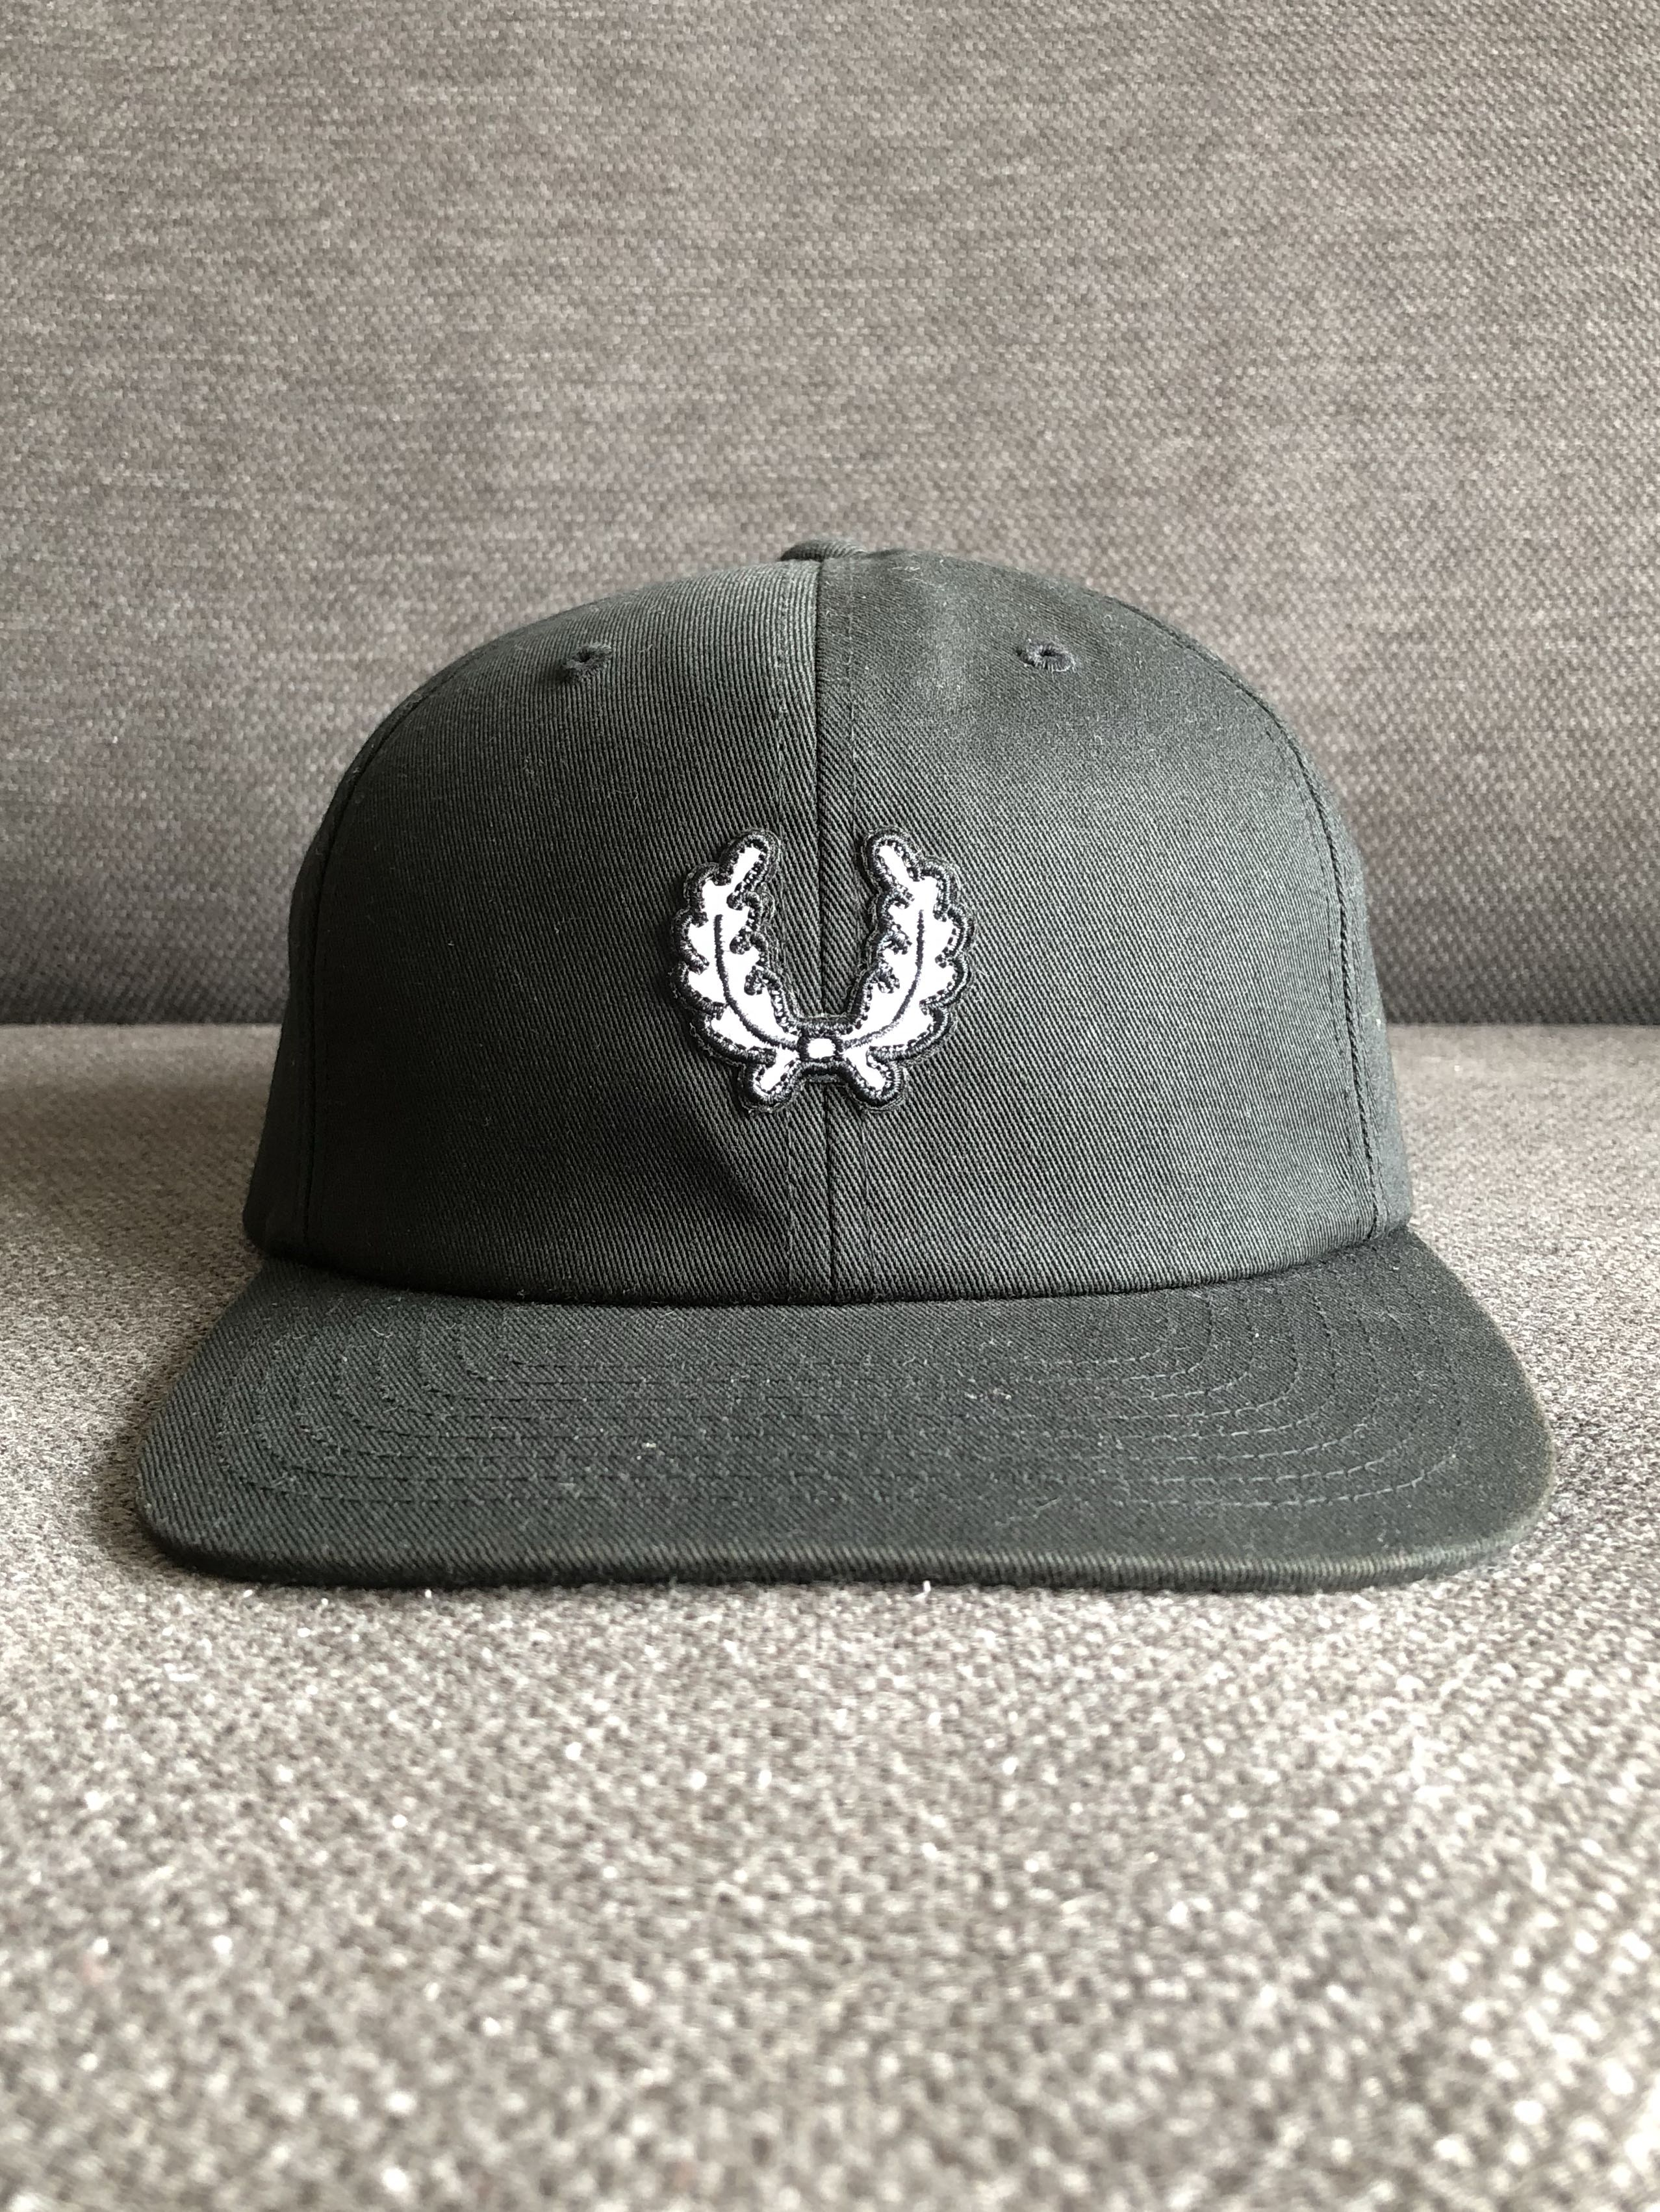 2af7cb0f01a0b6 Fred Perry X Stussy StrapBack ( Cap ), Men's Fashion, Accessories, Caps &  Hats on Carousell